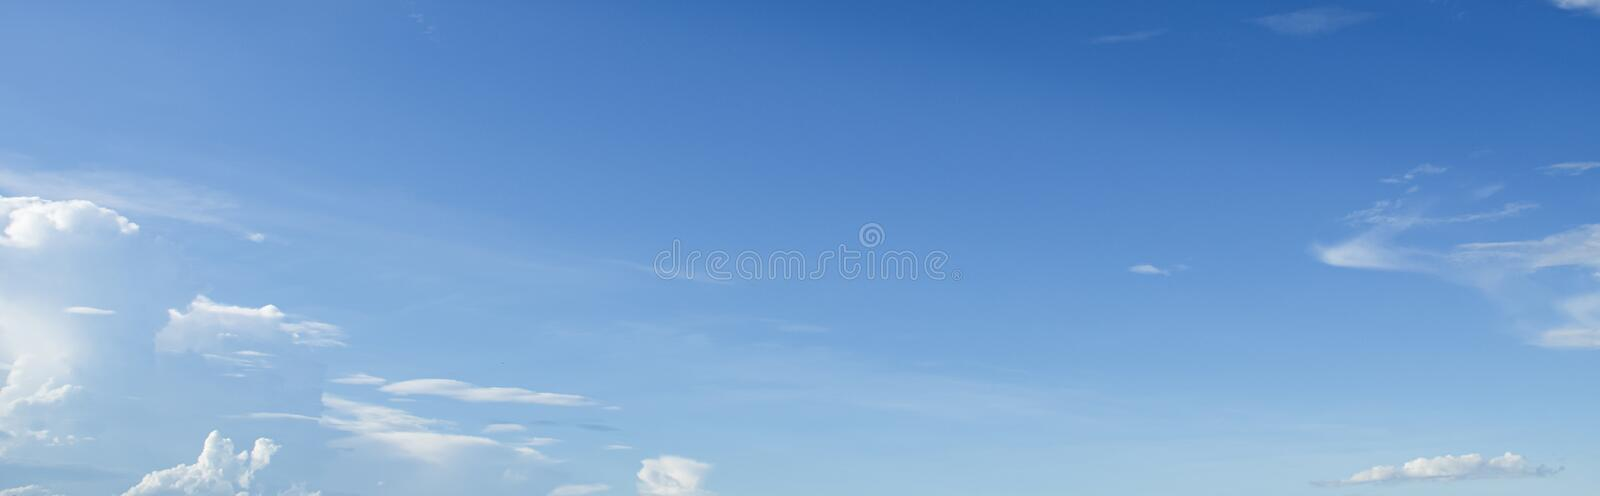 white cloud with blue sky background royalty free stock photo